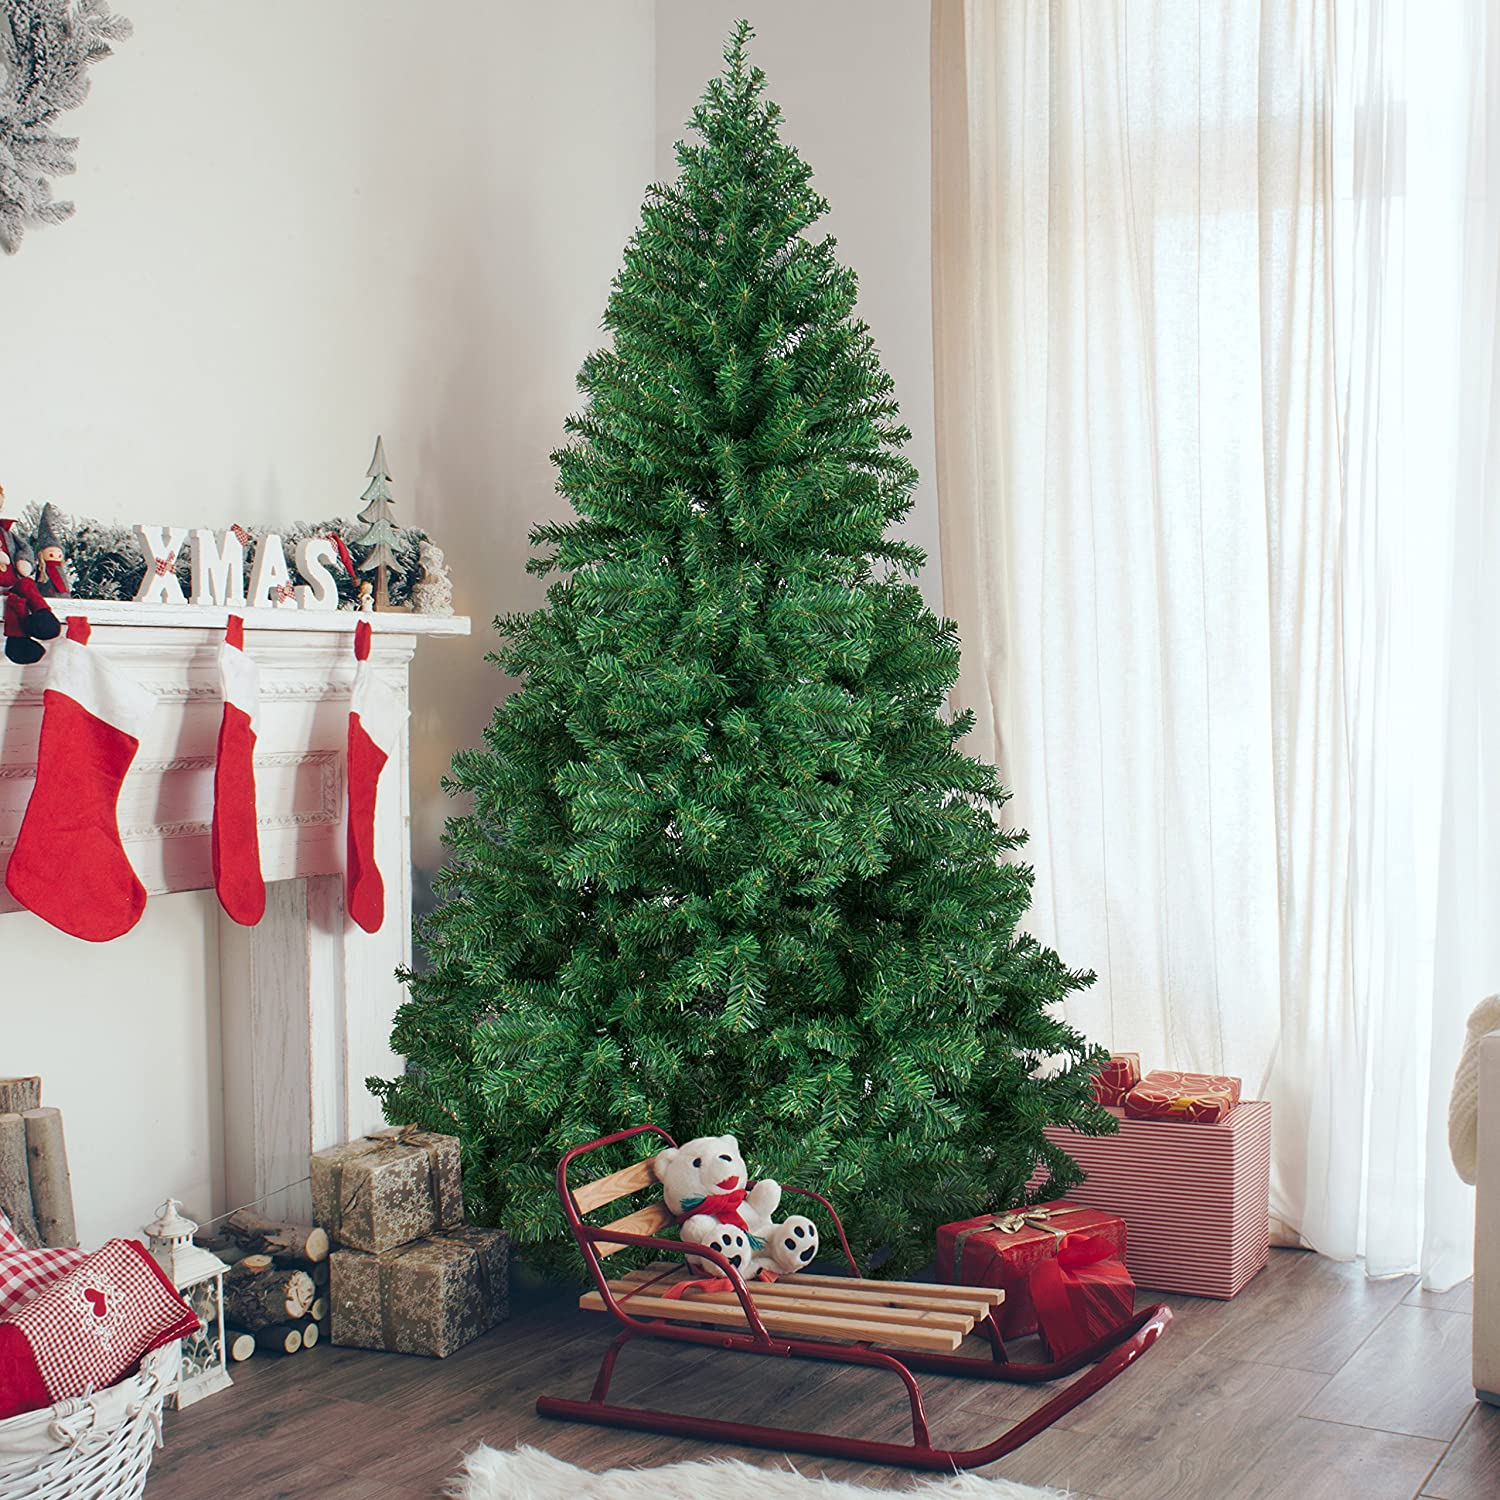 Best Choice Products 6' Premium Hinged Artificial Christmas Pine Tree with Solid Metal Legs 1000 Tips Full Tree SKY2359